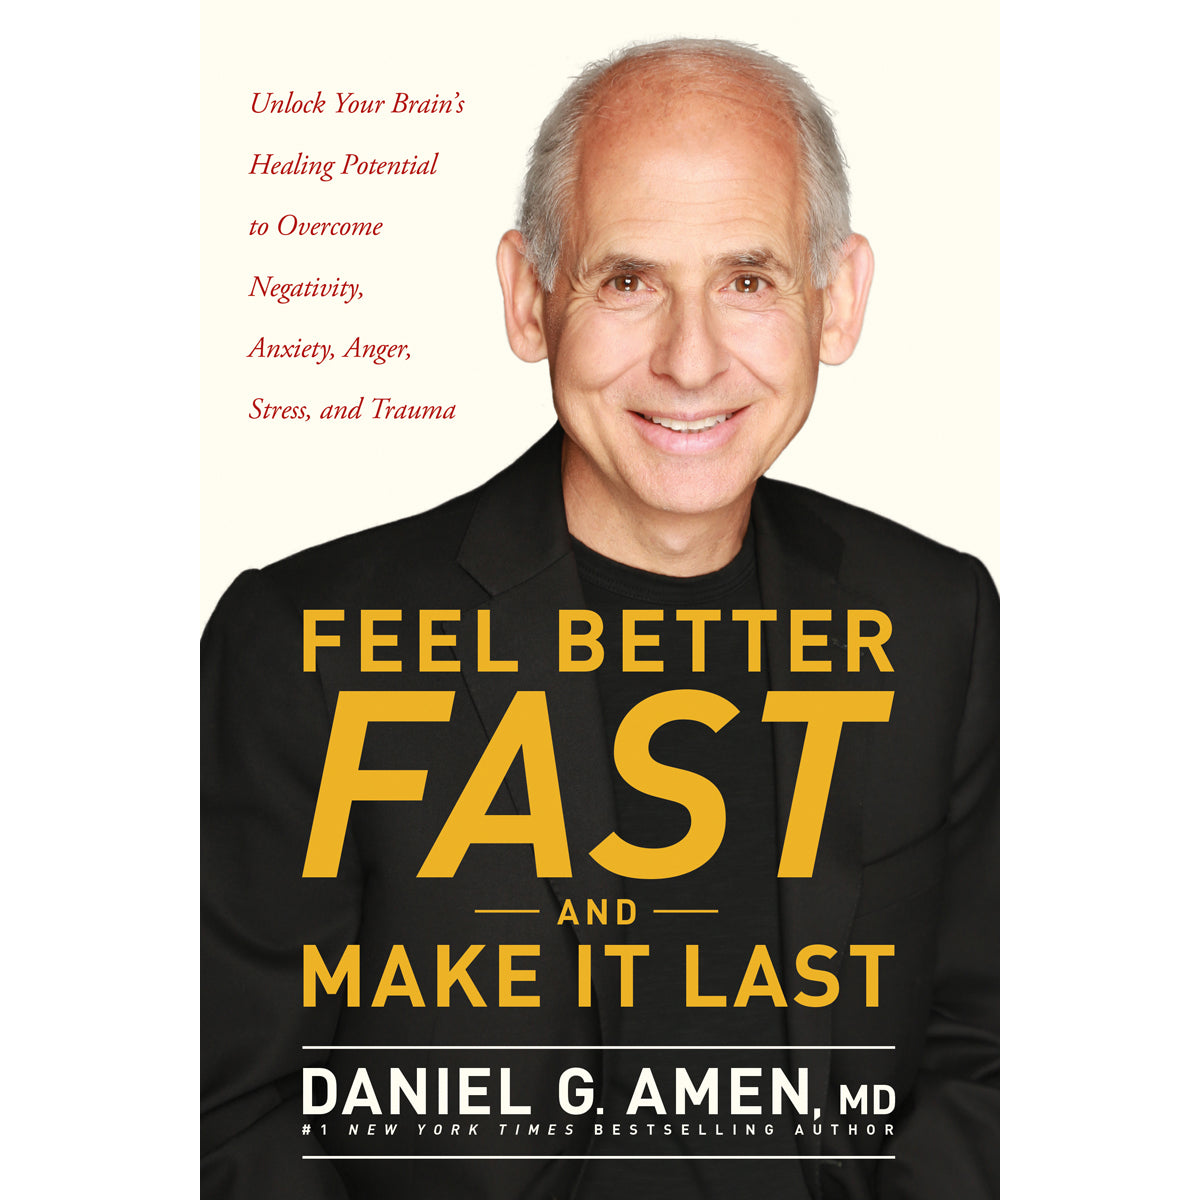 Feel Better Fast And Make It Last (Paperback)